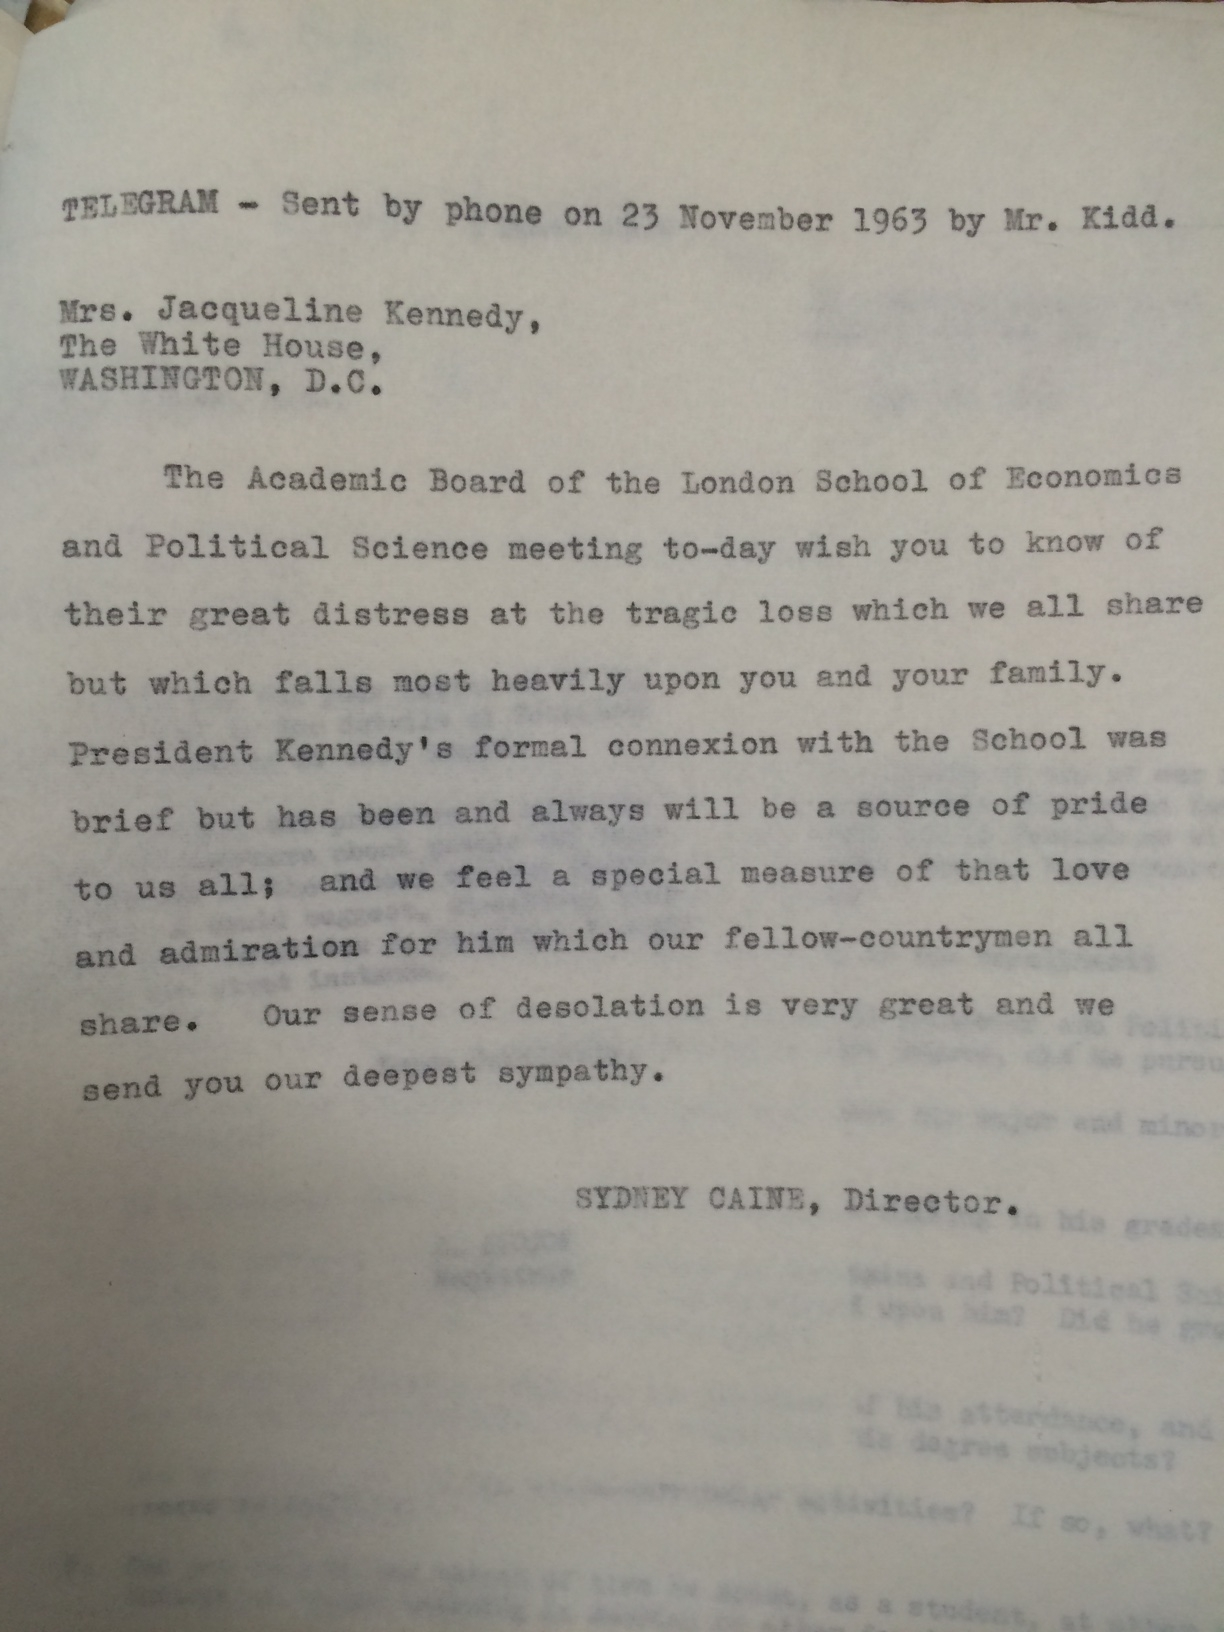 LSE letter of condolence to Jacqueline Kennedy, 1963